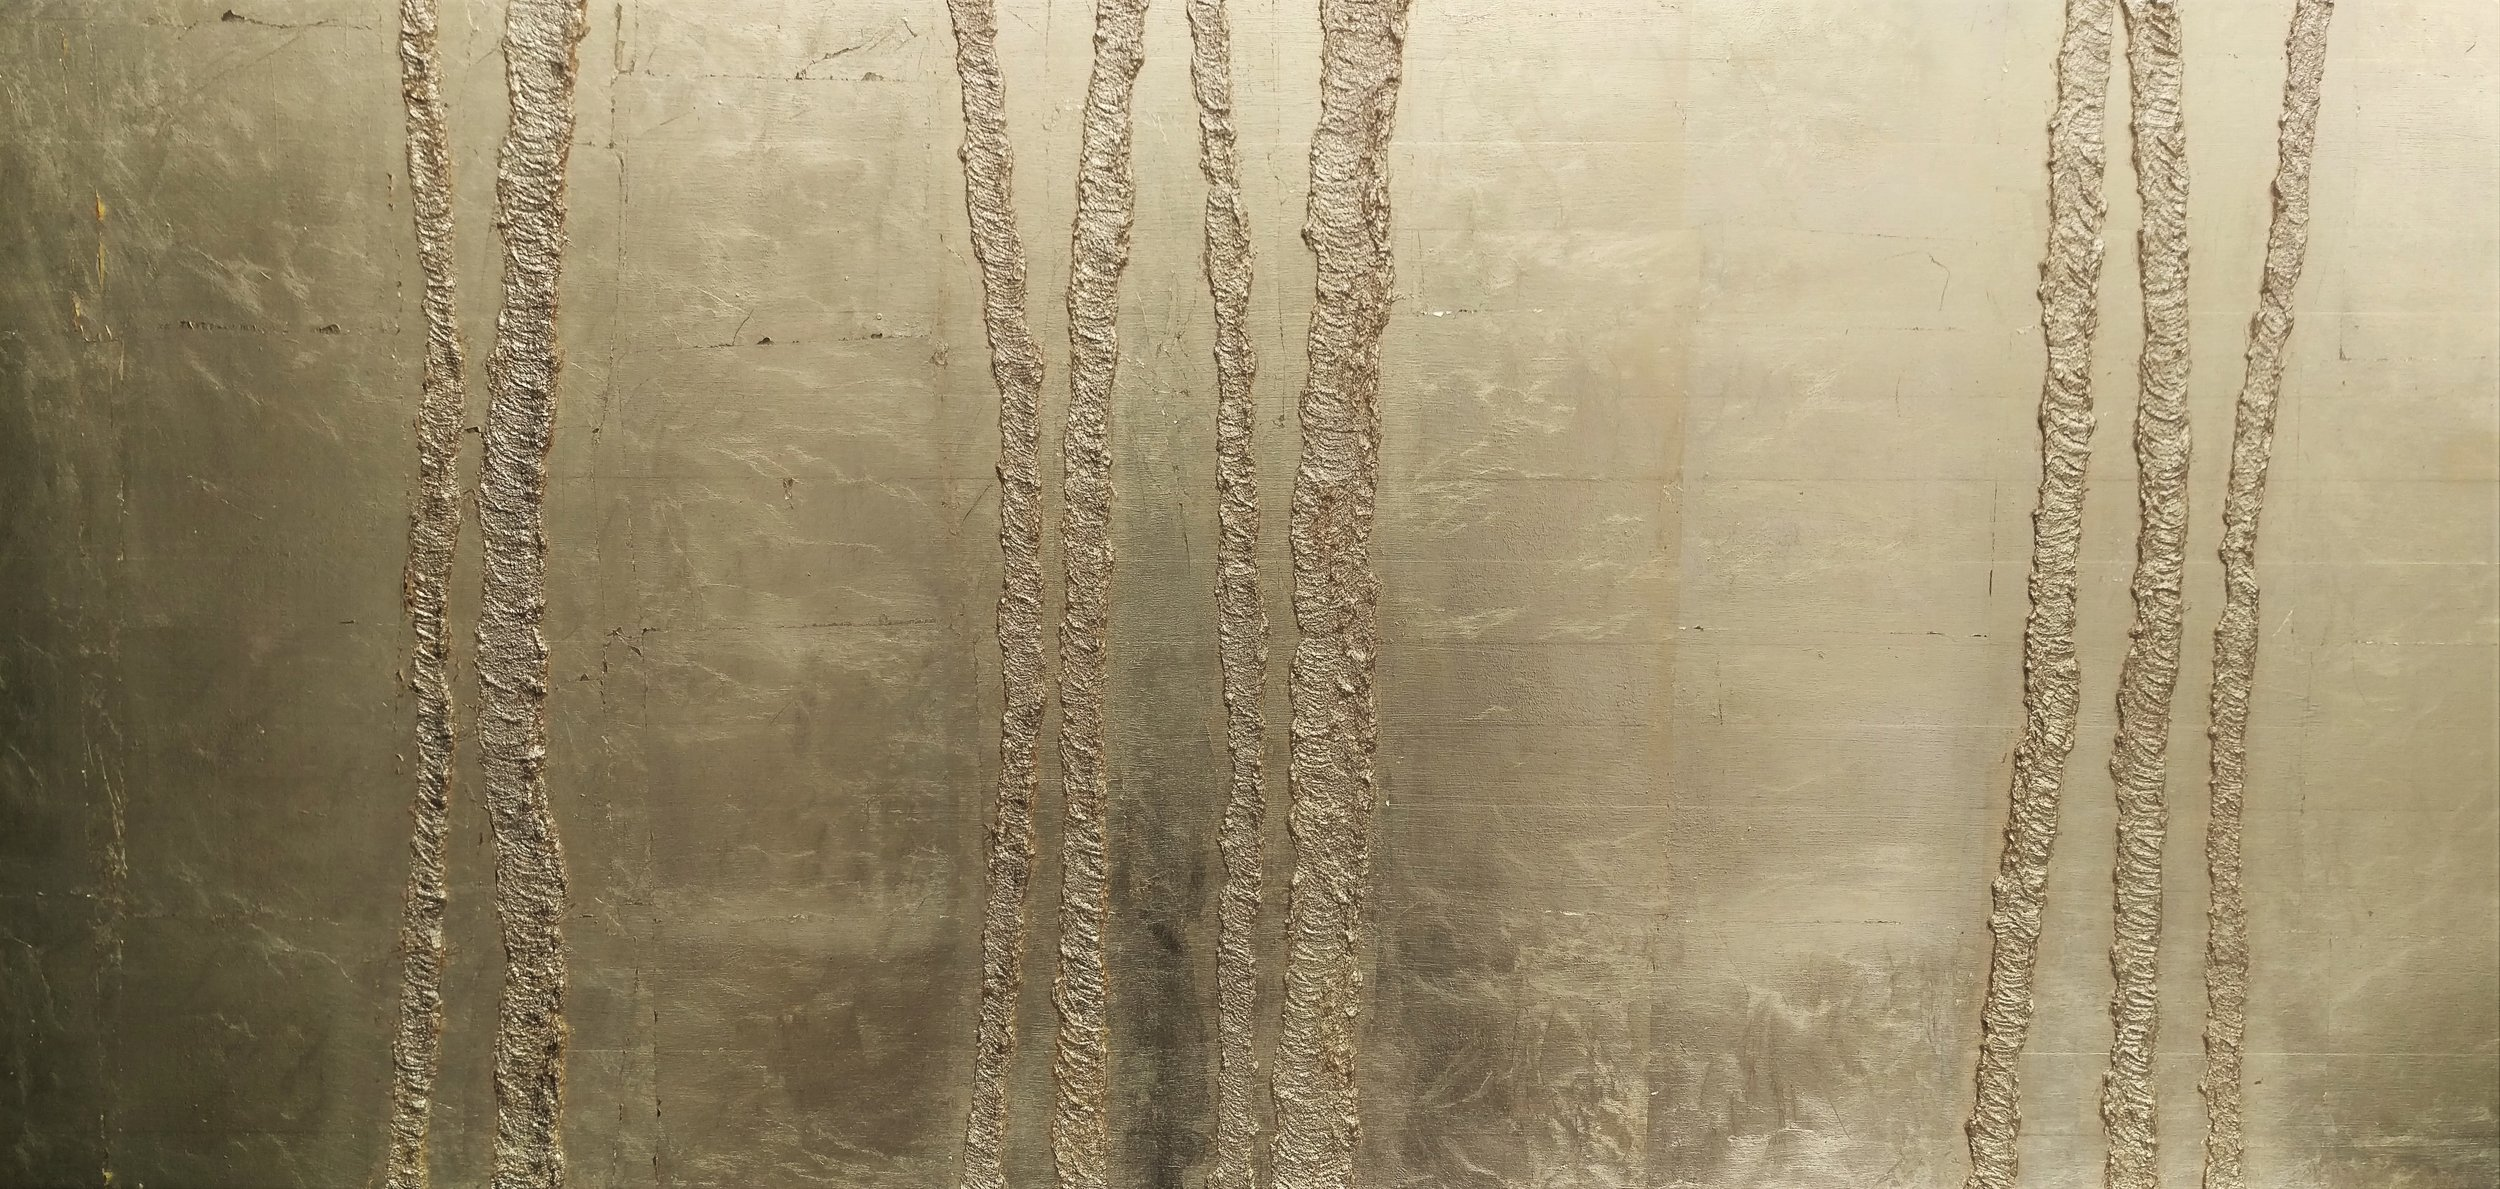 Enlightened Forest  60 x 140 cm       Gold metallic leaf, linseed oil on birch panel   Available To View 12,000 Sek